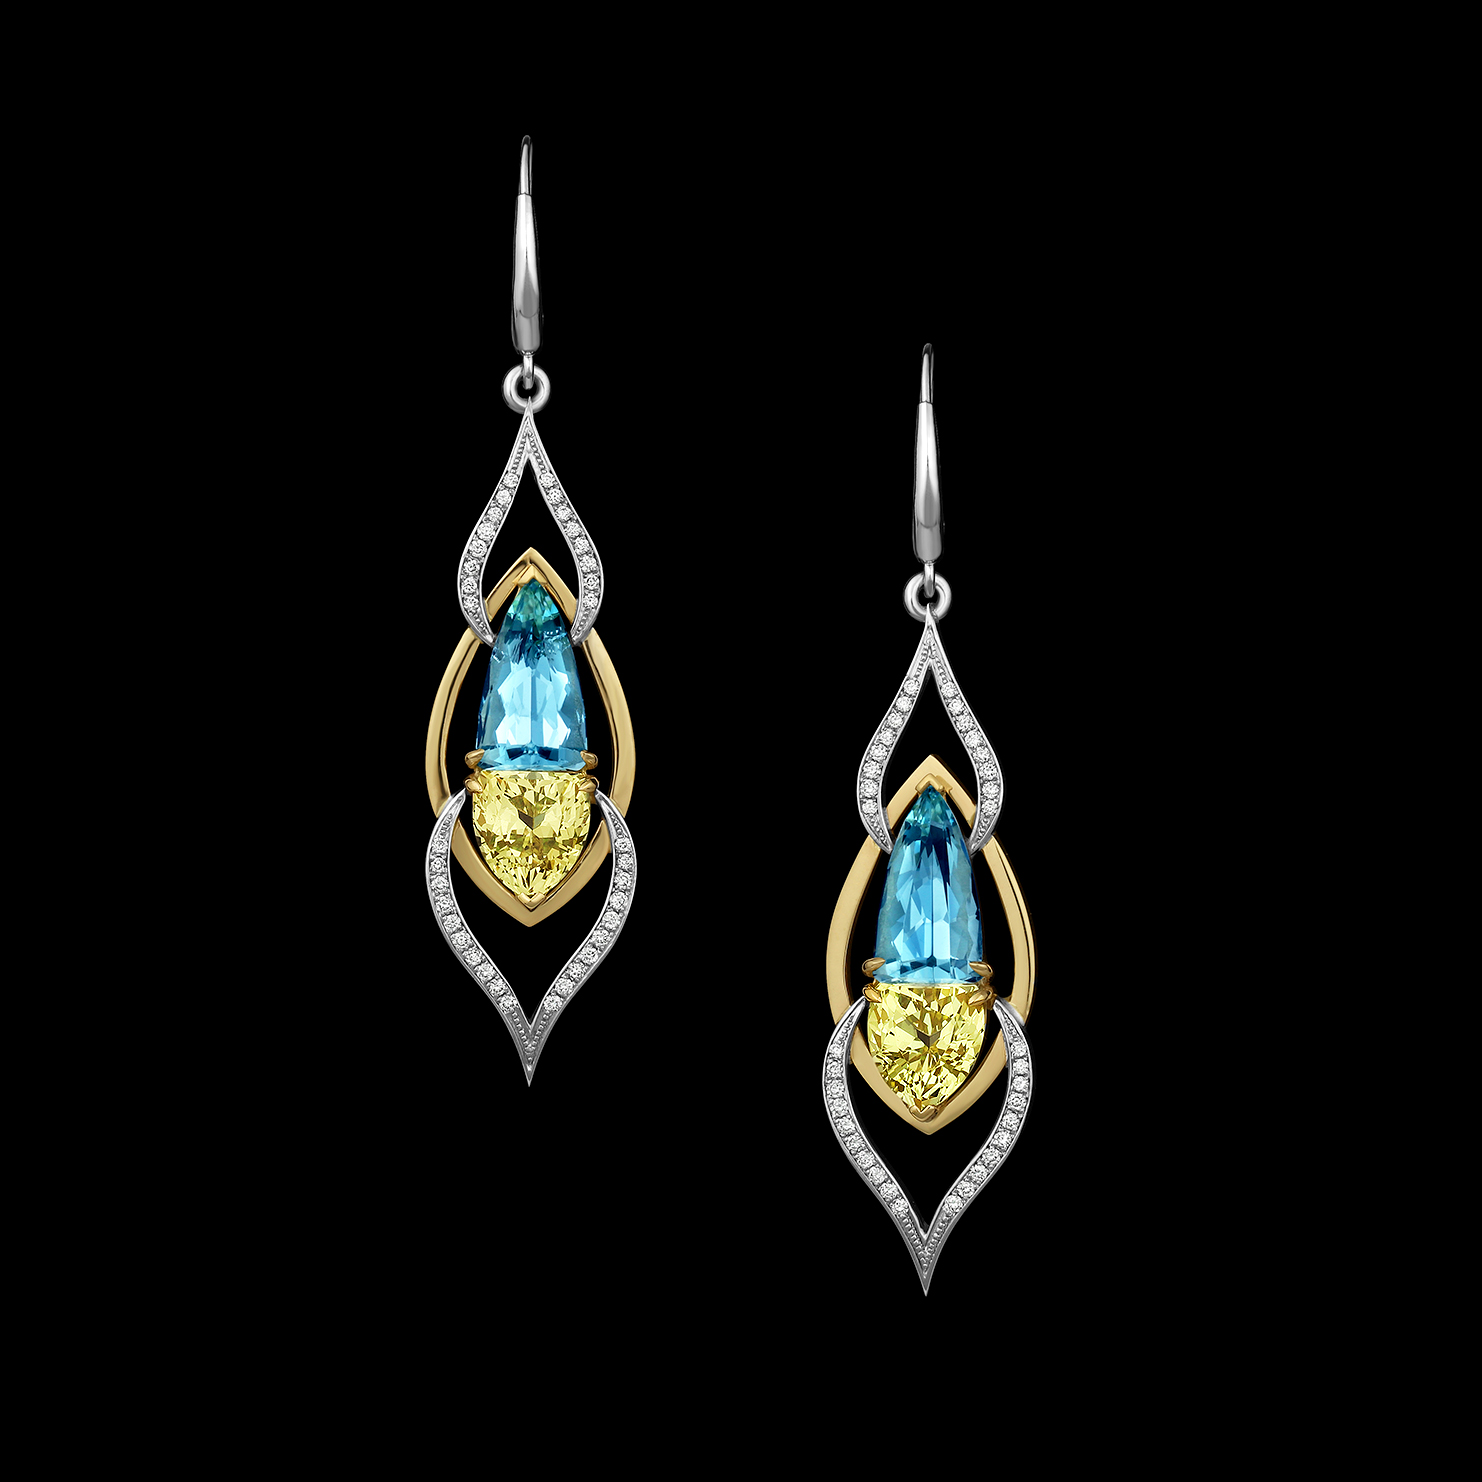 Heliodor, Aquamarine & Diamond Earrings | Verano